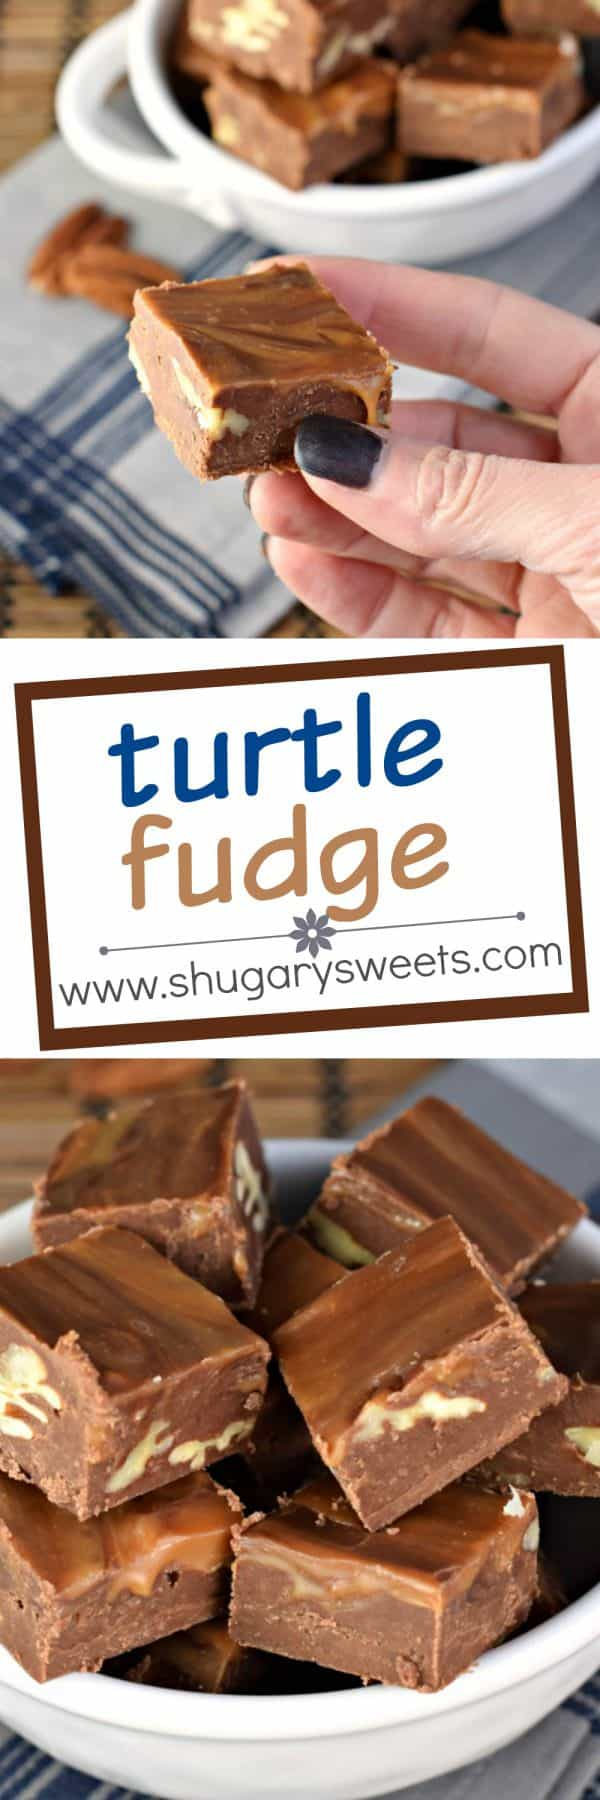 Turtle Fudge is made with a rich, chocolate base and swirled with caramel and packed with crunchy pecans!